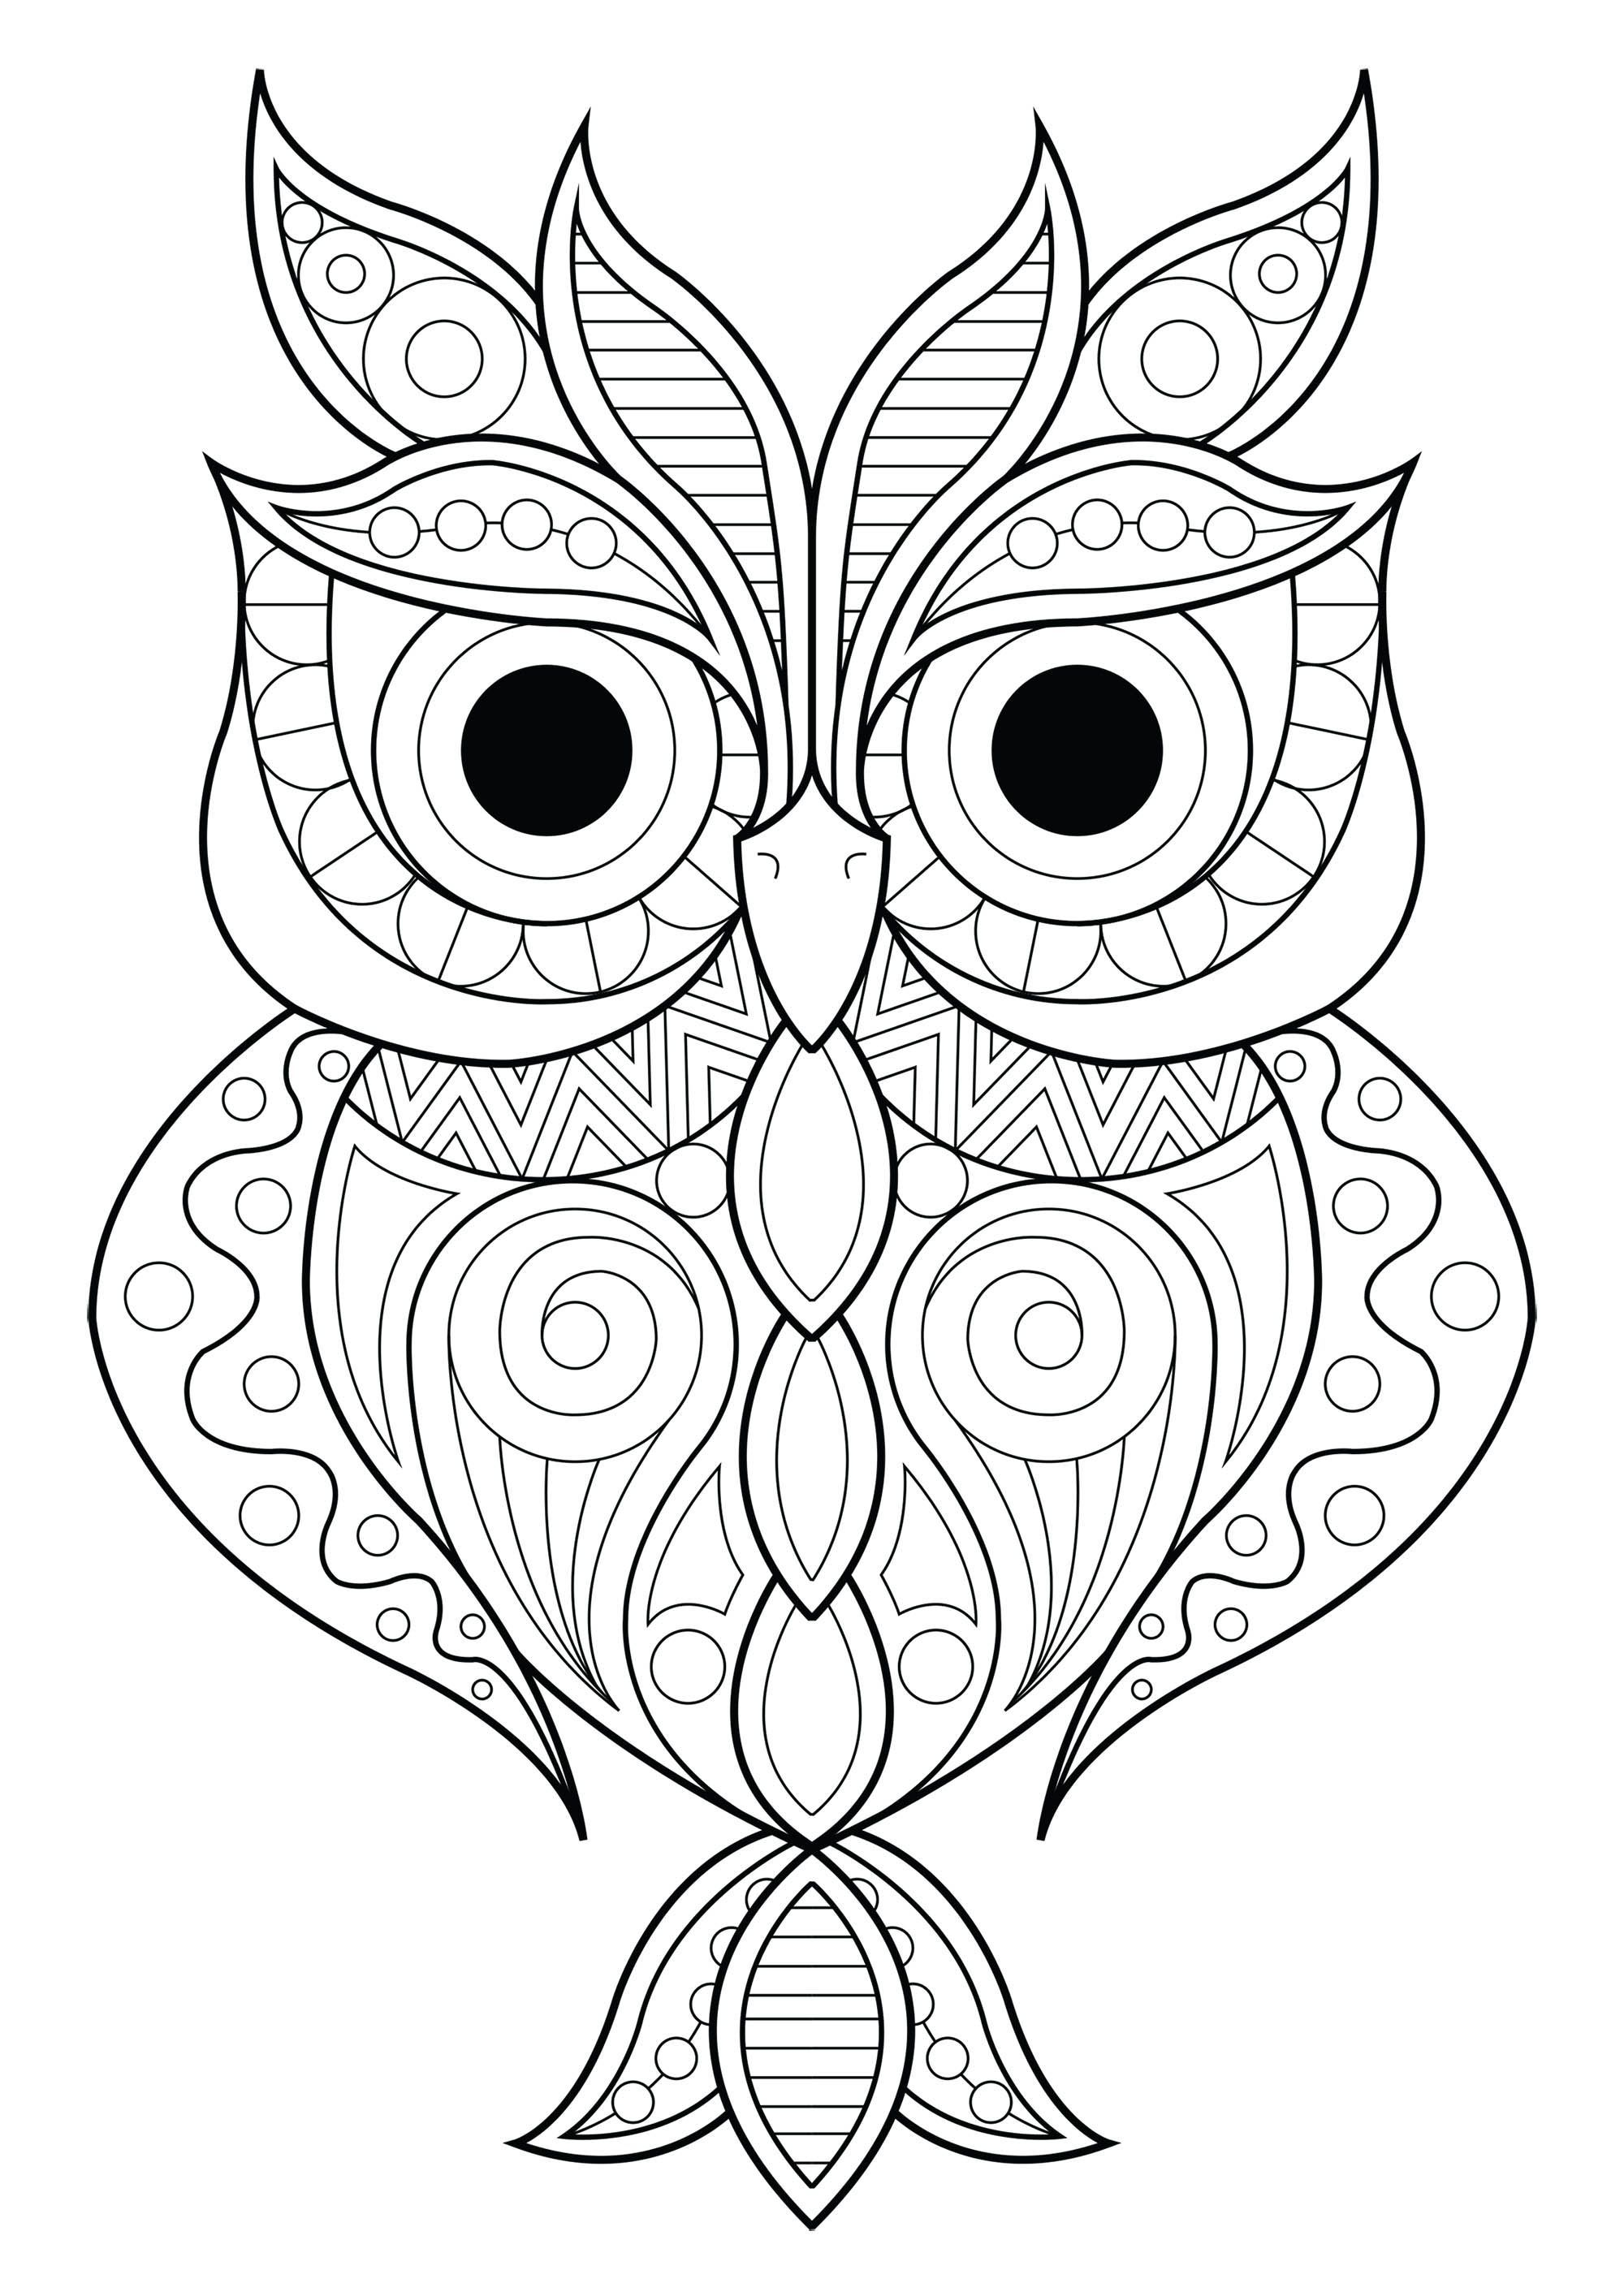 Owl Coloring Pages Animal Coloring Pages Owl Coloring Pages Bird Coloring Pages